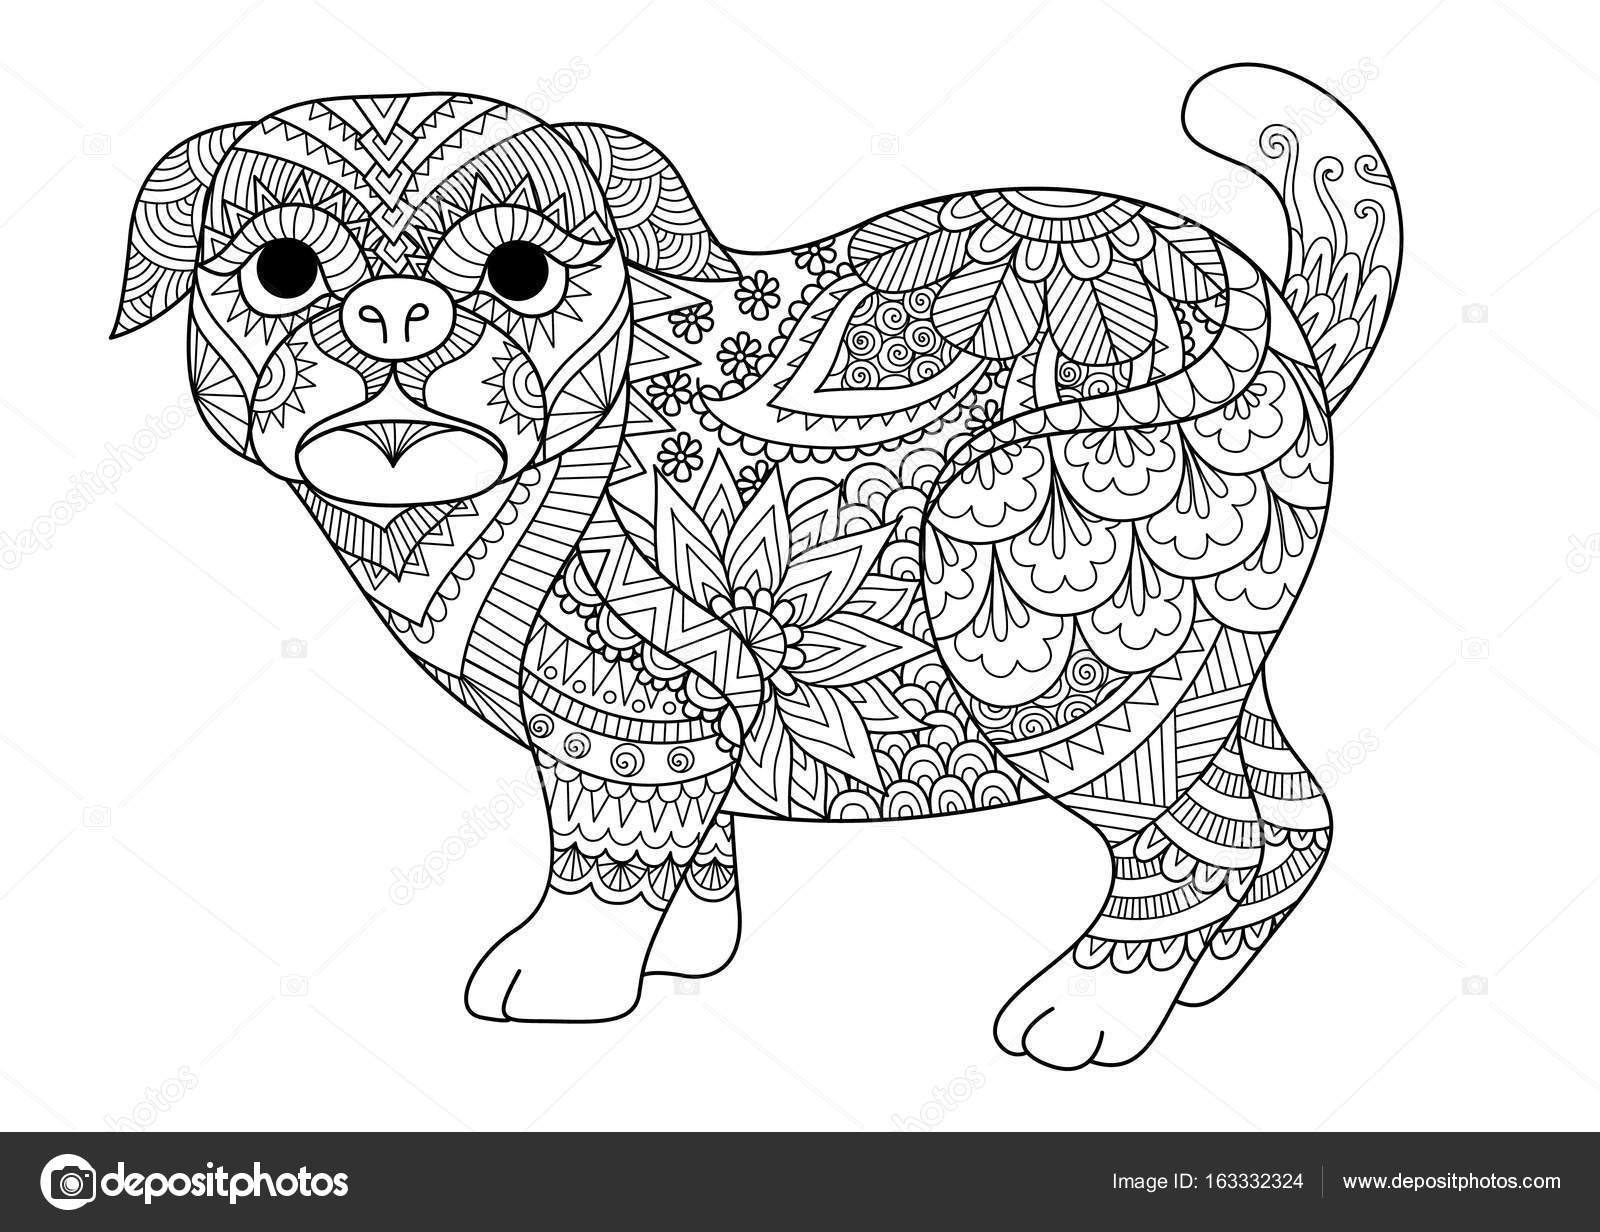 Cute Pug Coloring Pages Line Art Design Of Cute Pug Dog For Design Element T Shirt Design And Adult Coloring Book Page Vector Illustration Stock Vector C Somjaicindy Gmail Com 163332324